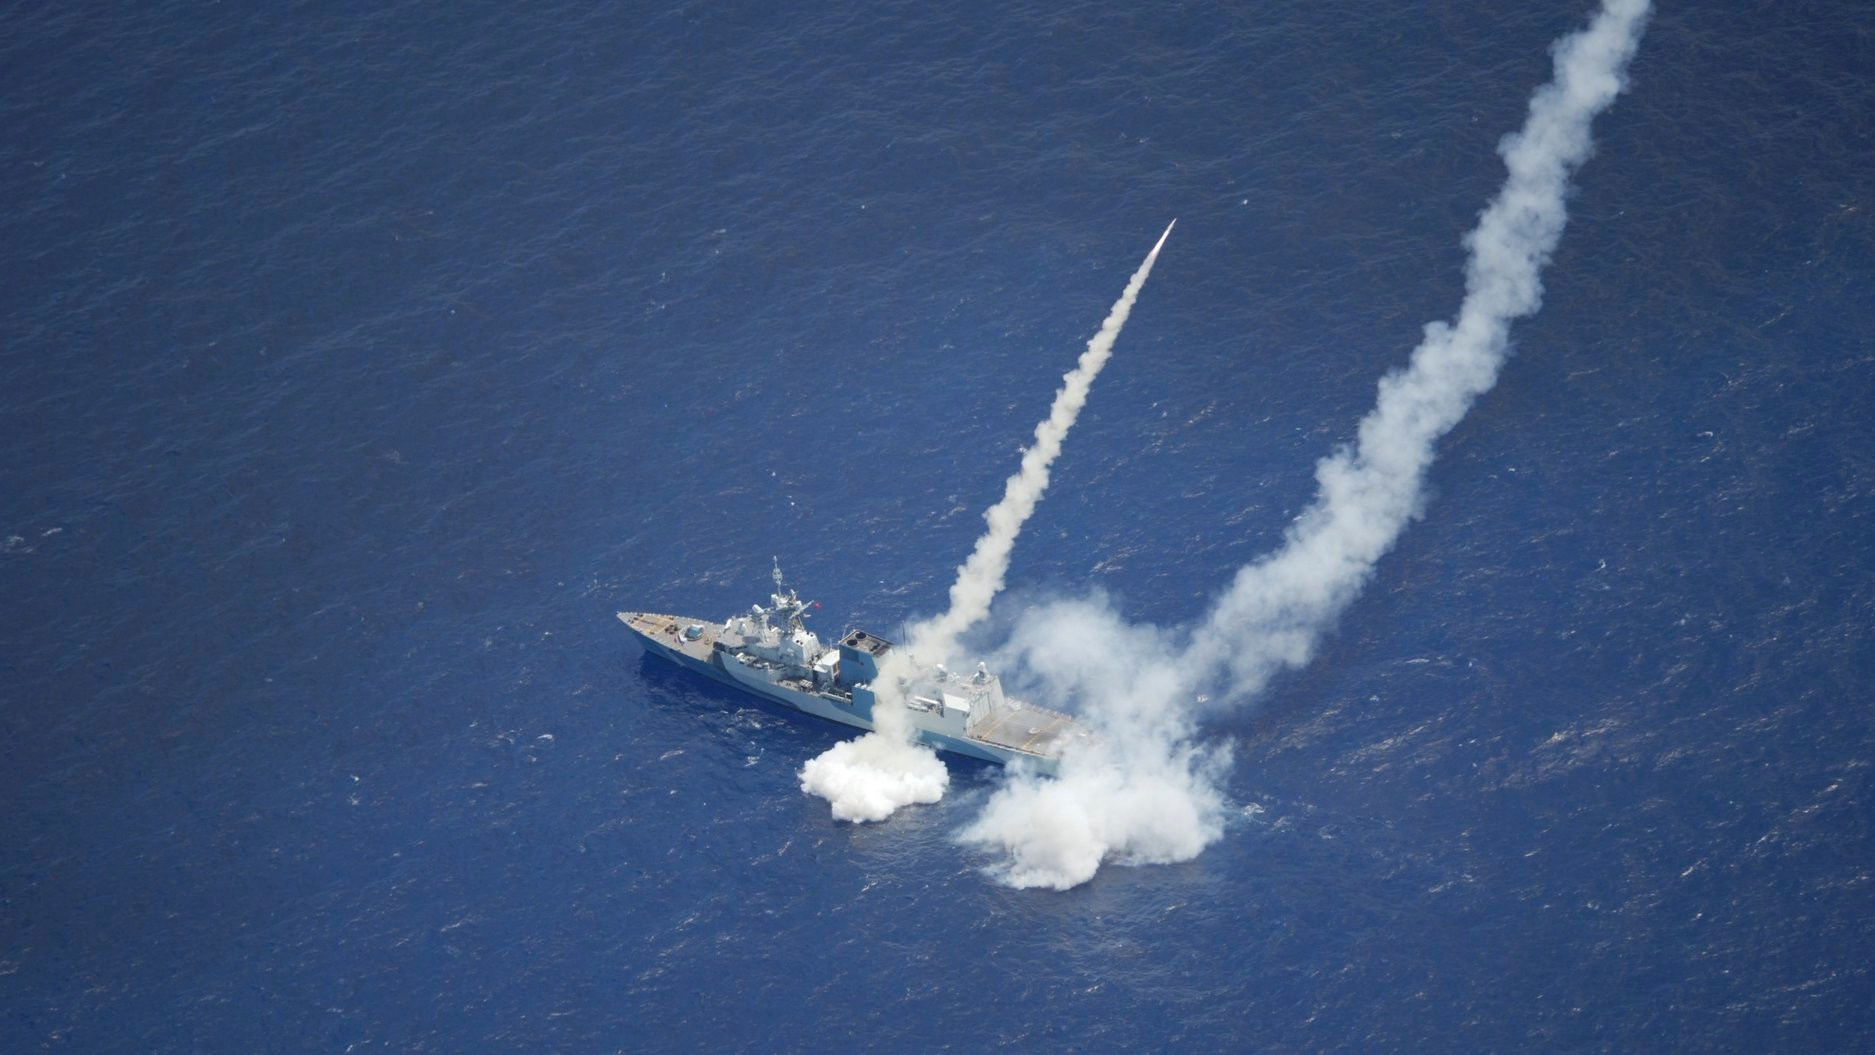 HMCS Regina fires two RGM-84 Harpoon Surface-to-Surface Missiles during RIMPAC 2020.